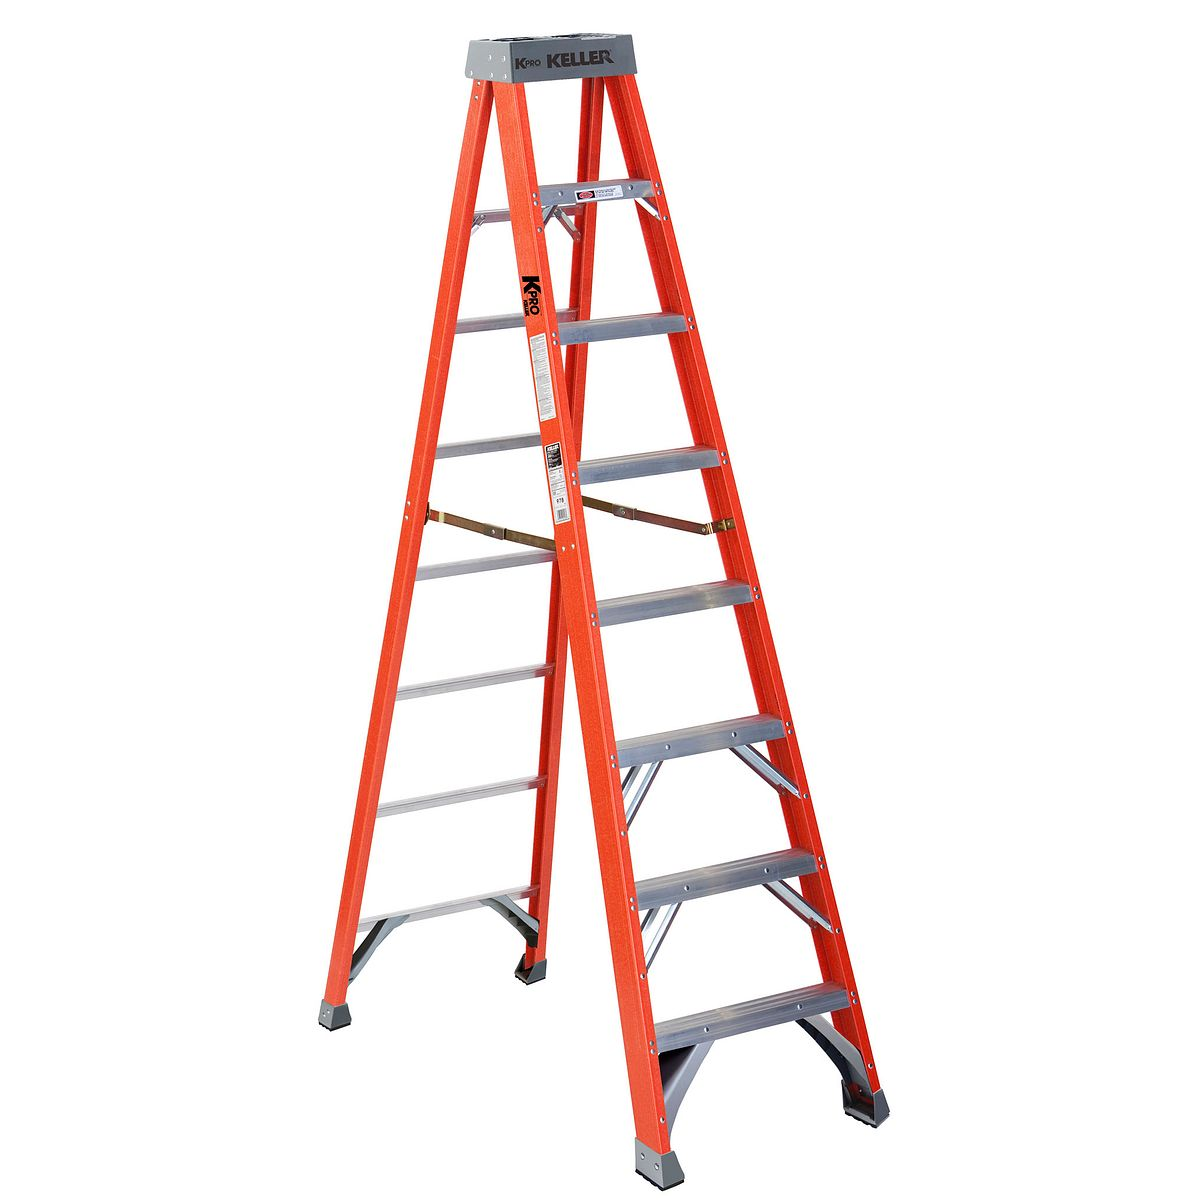 978 Step Ladders Keller Ladder